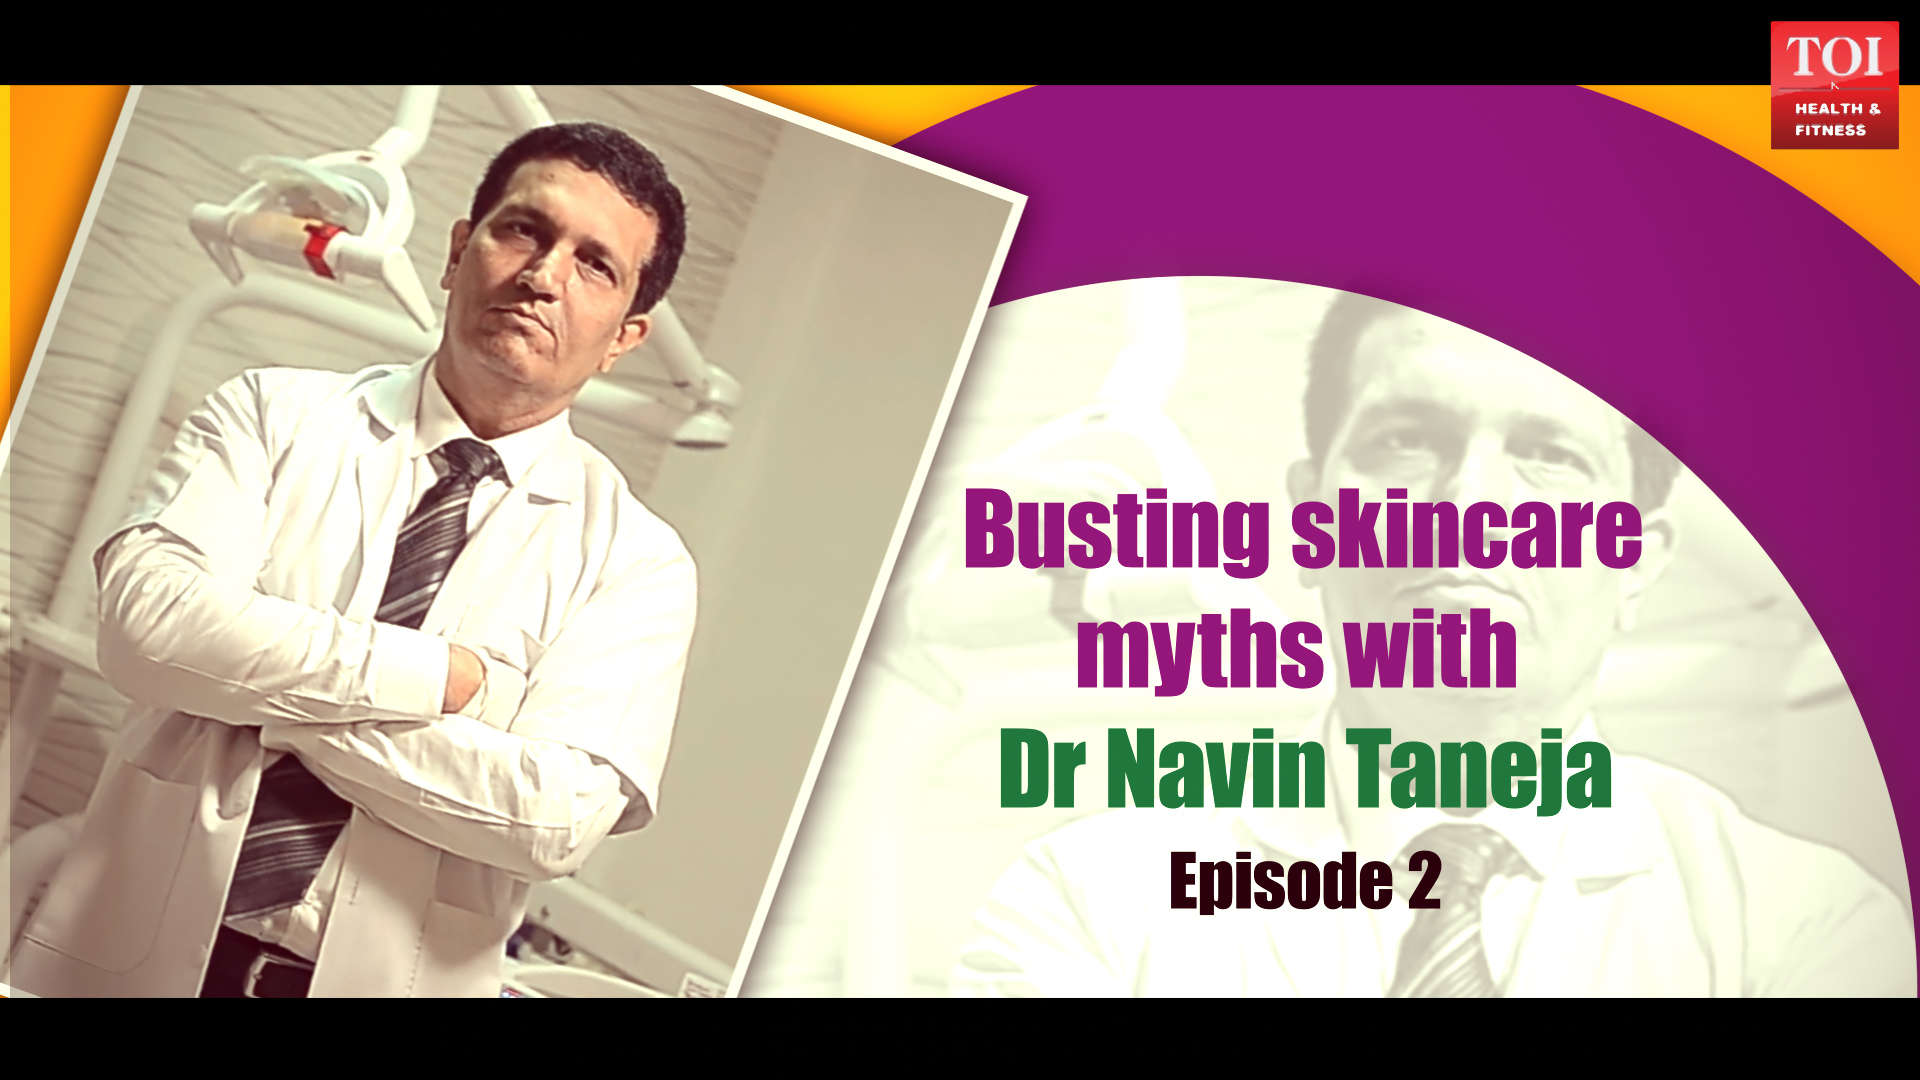 Busting skincare myths with Dr. Navin Taneja - Episode 2